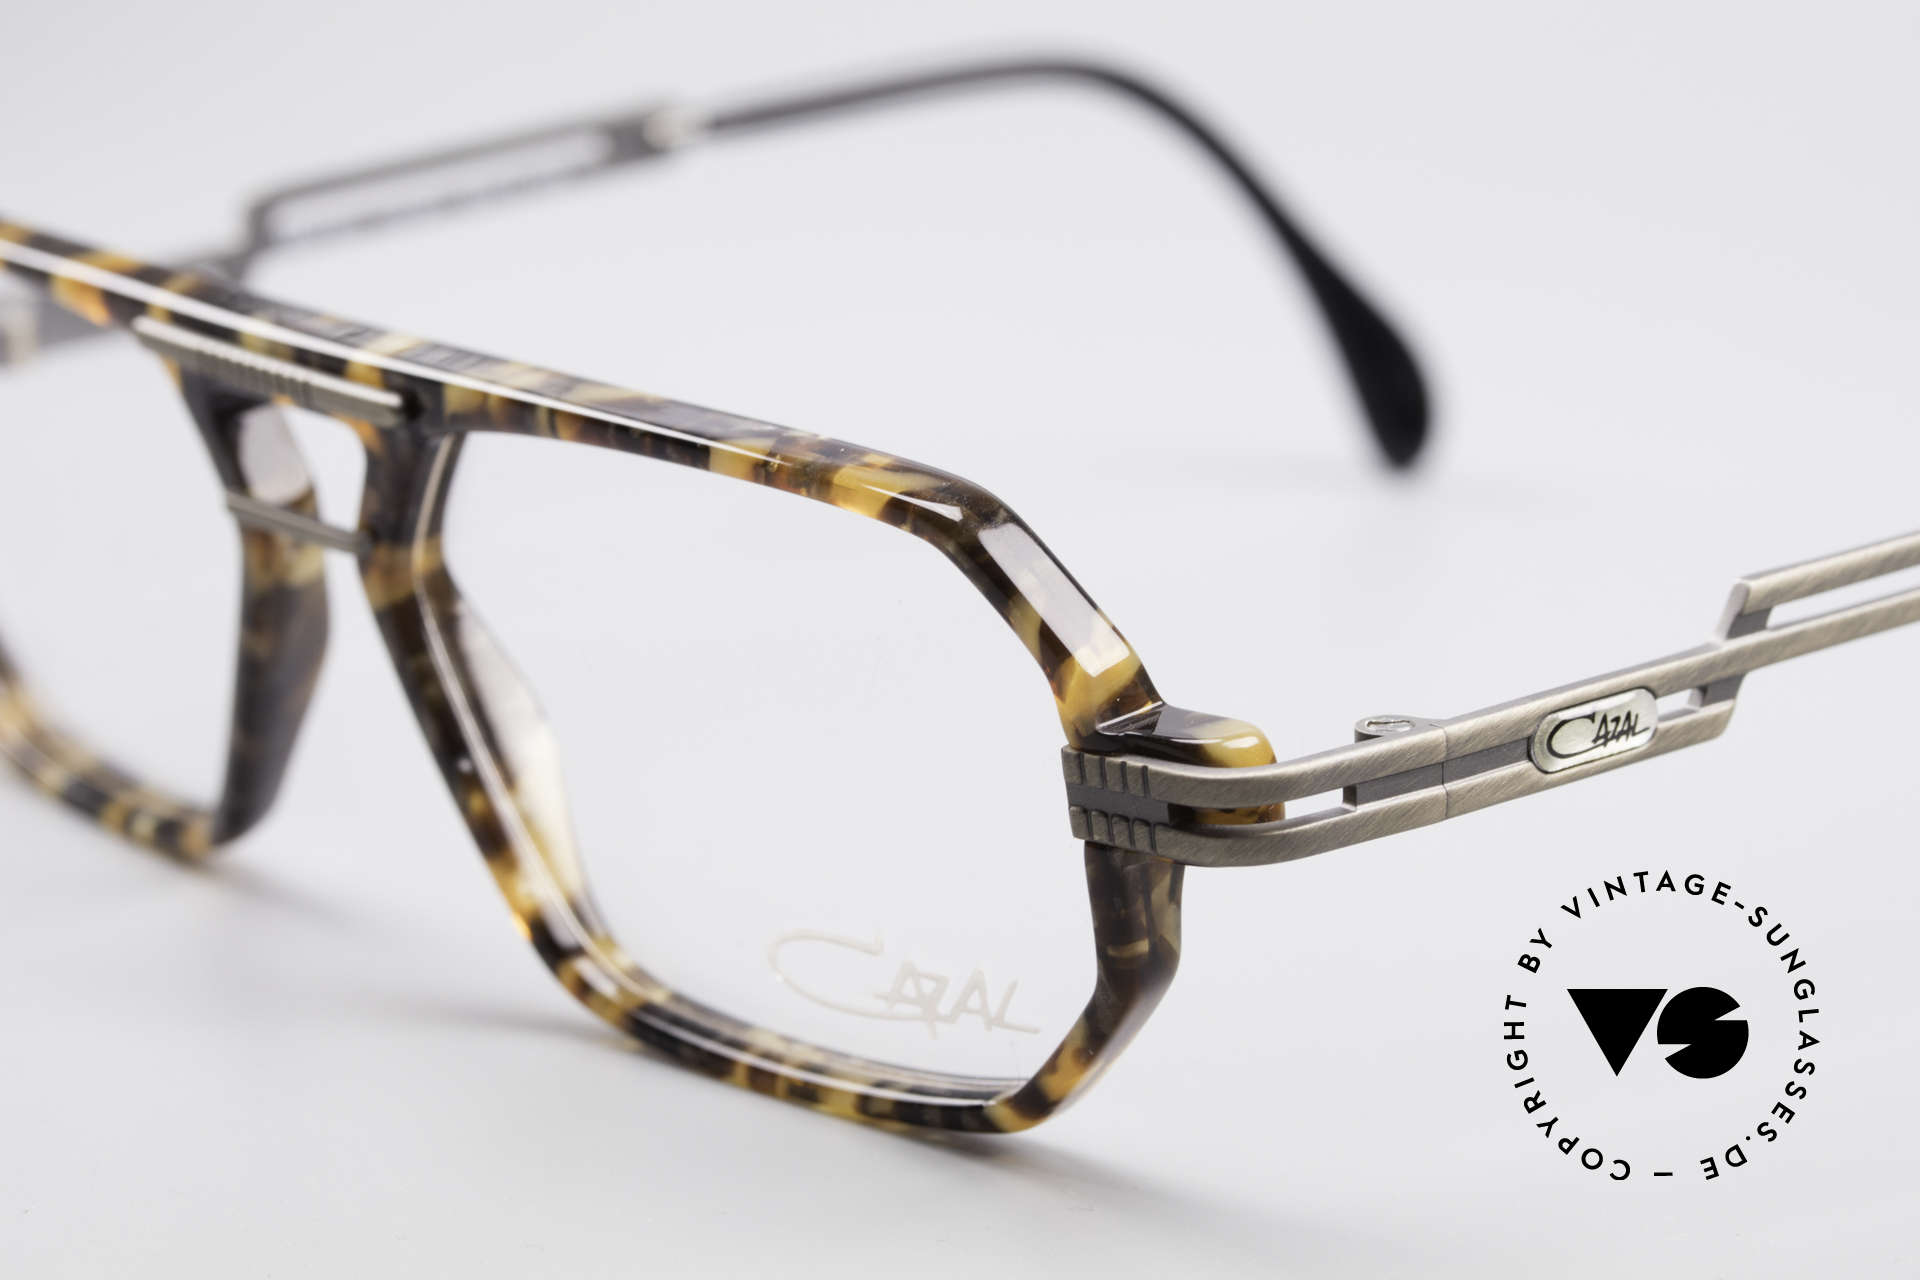 Cazal 651 Rare 90's Vintage Eyeglasses, never worn (like all our vintage Cazal designer glasses), Made for Men